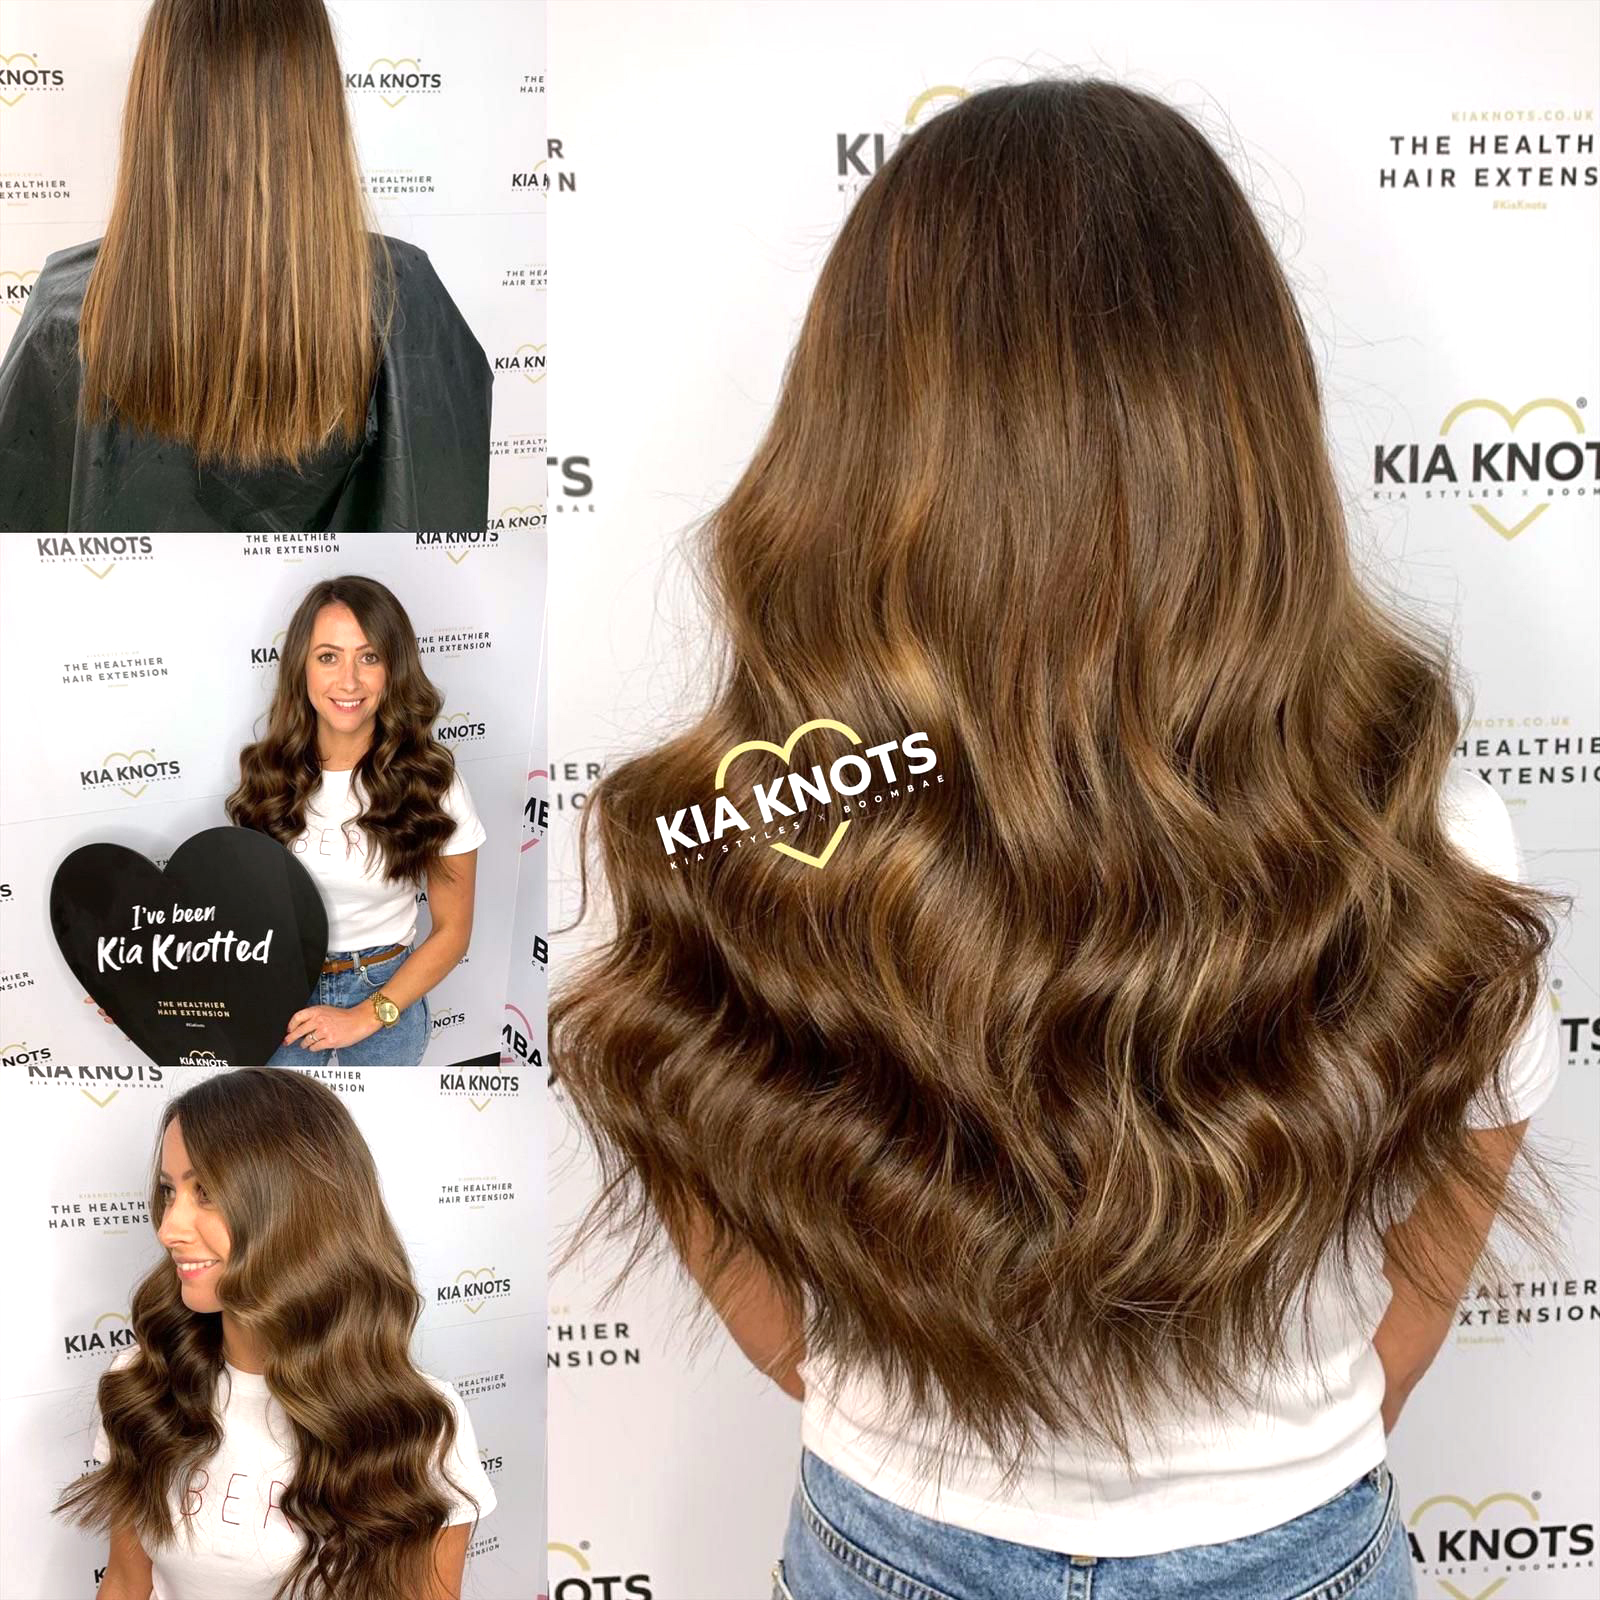 Healthy Hair Extensions on Brown hair